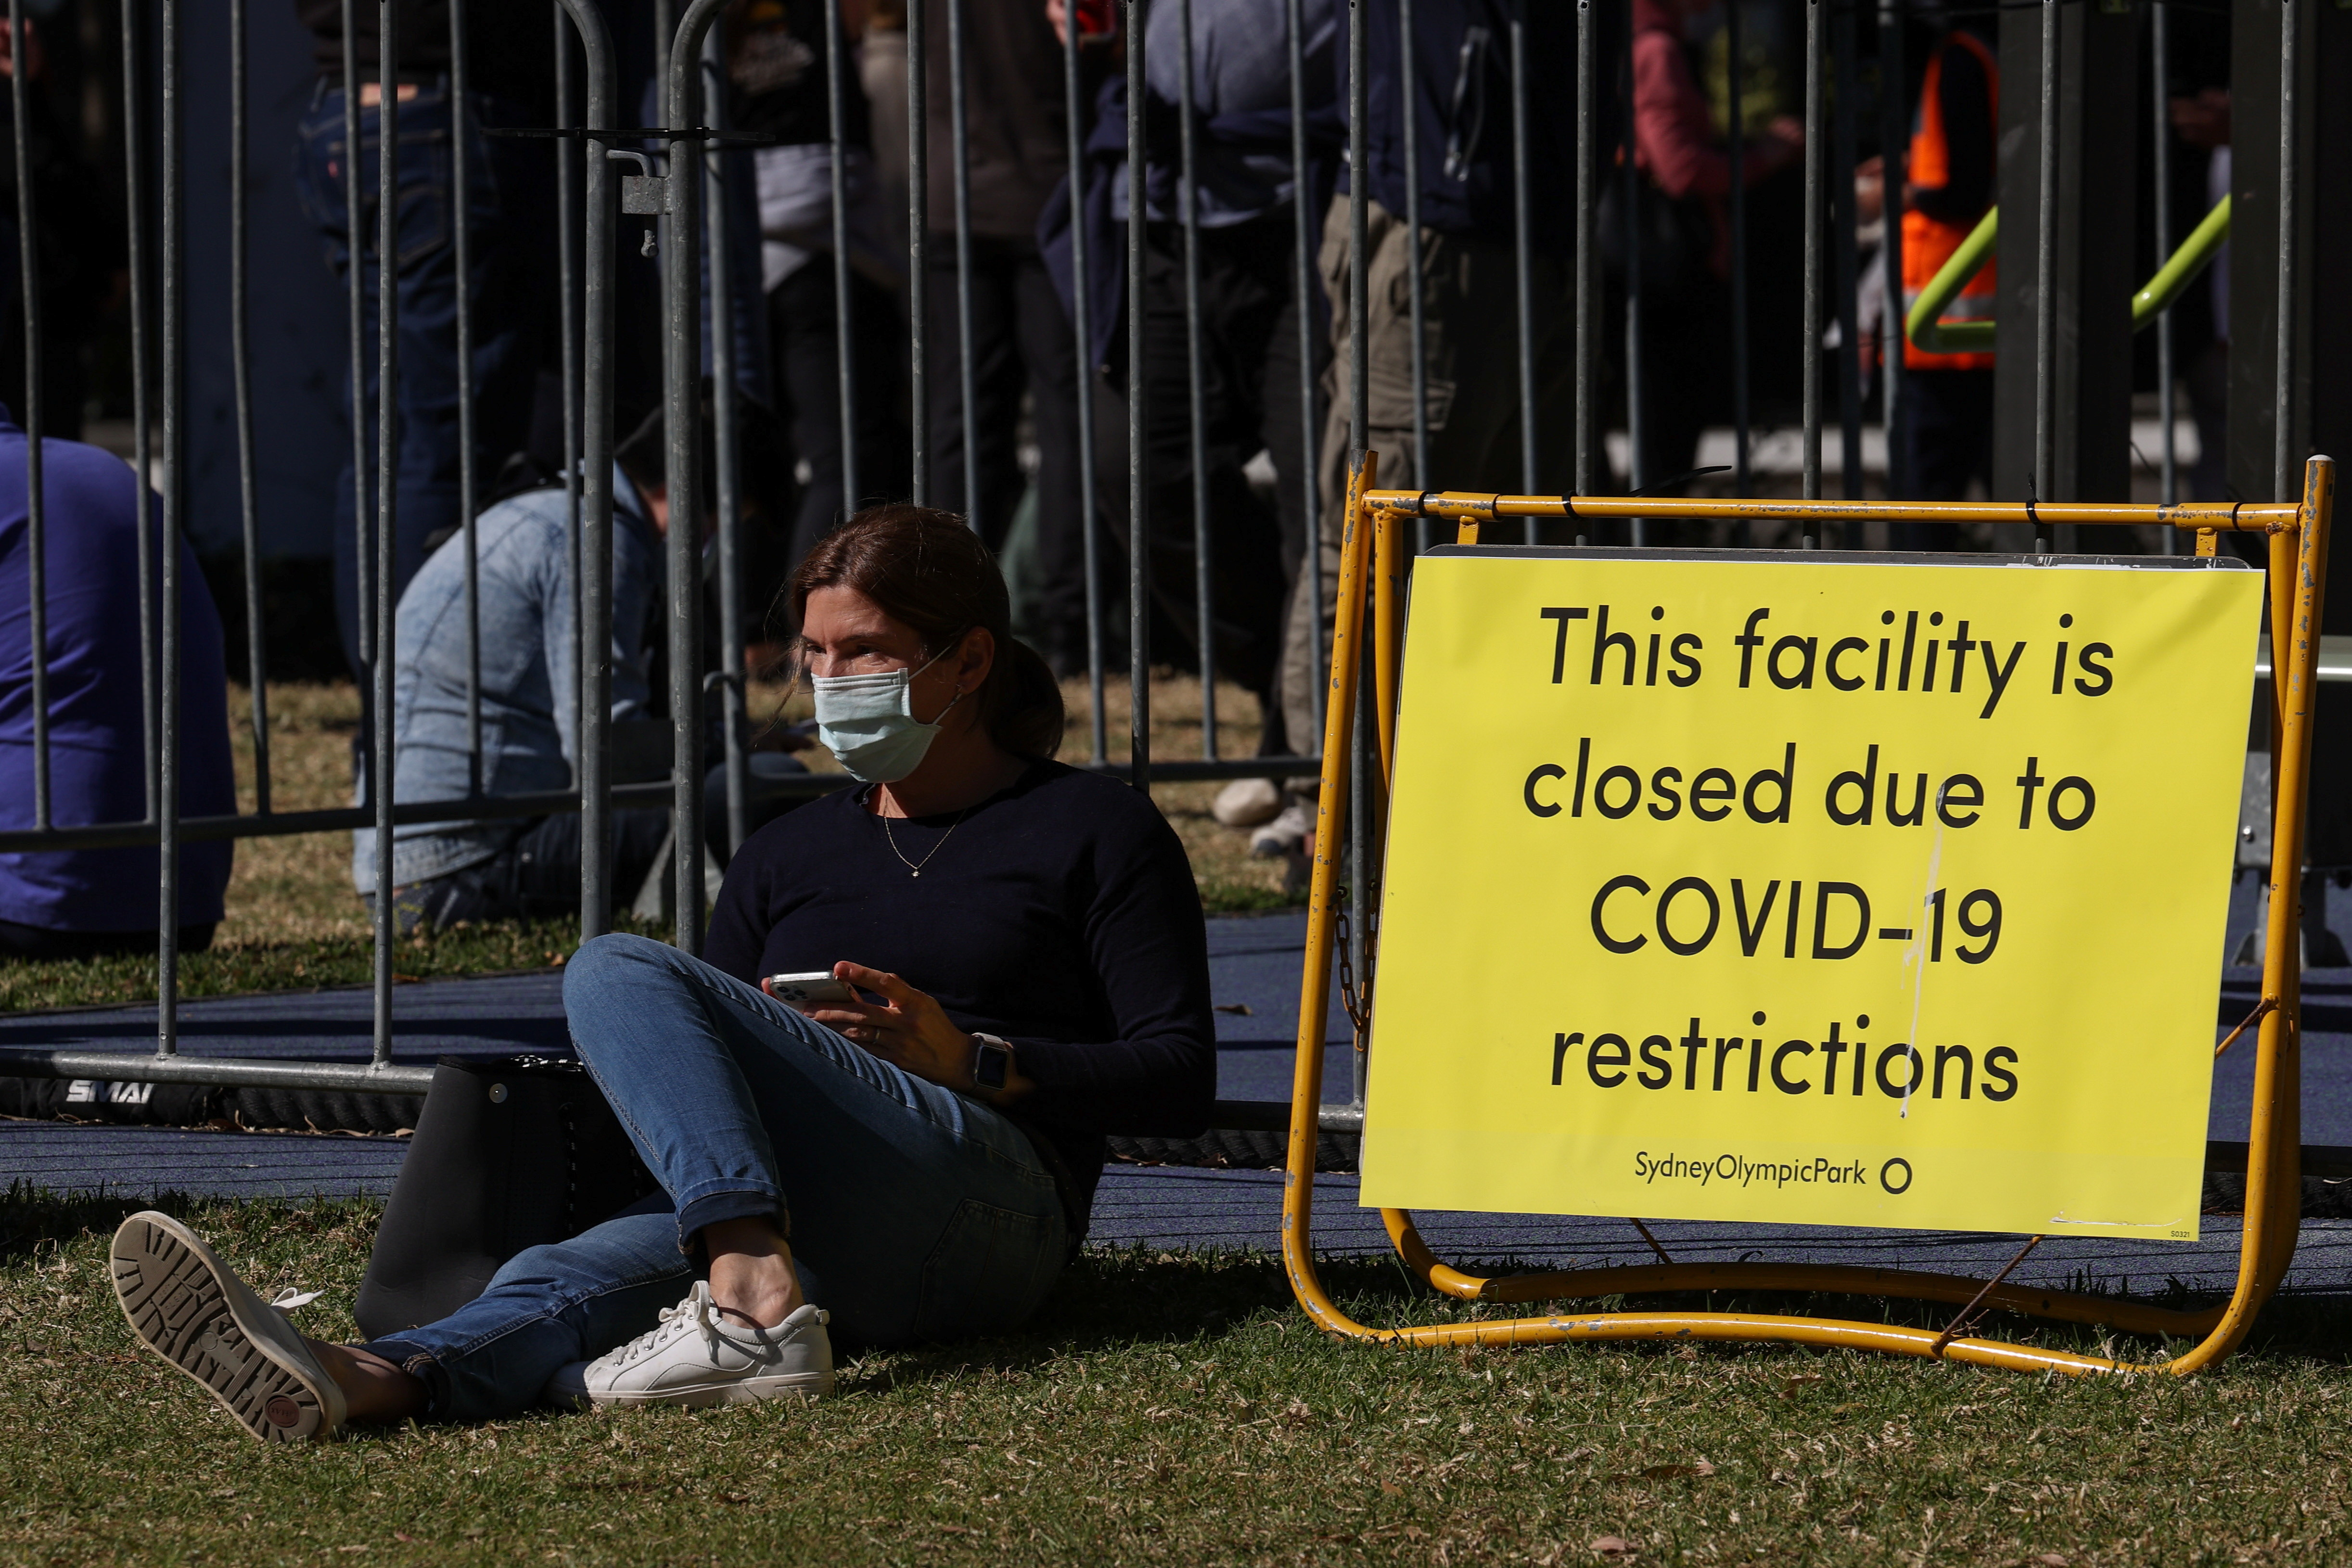 People spread out in a park while waiting for their appointments outside a coronavirus disease (COVID-19) vaccination centre at Sydney Olympic Park during a lockdown to curb the spread of an outbreak in Sydney, Australia, August 16, 2021.  REUTERS/Loren Elliott - RC226P9Z4ECE